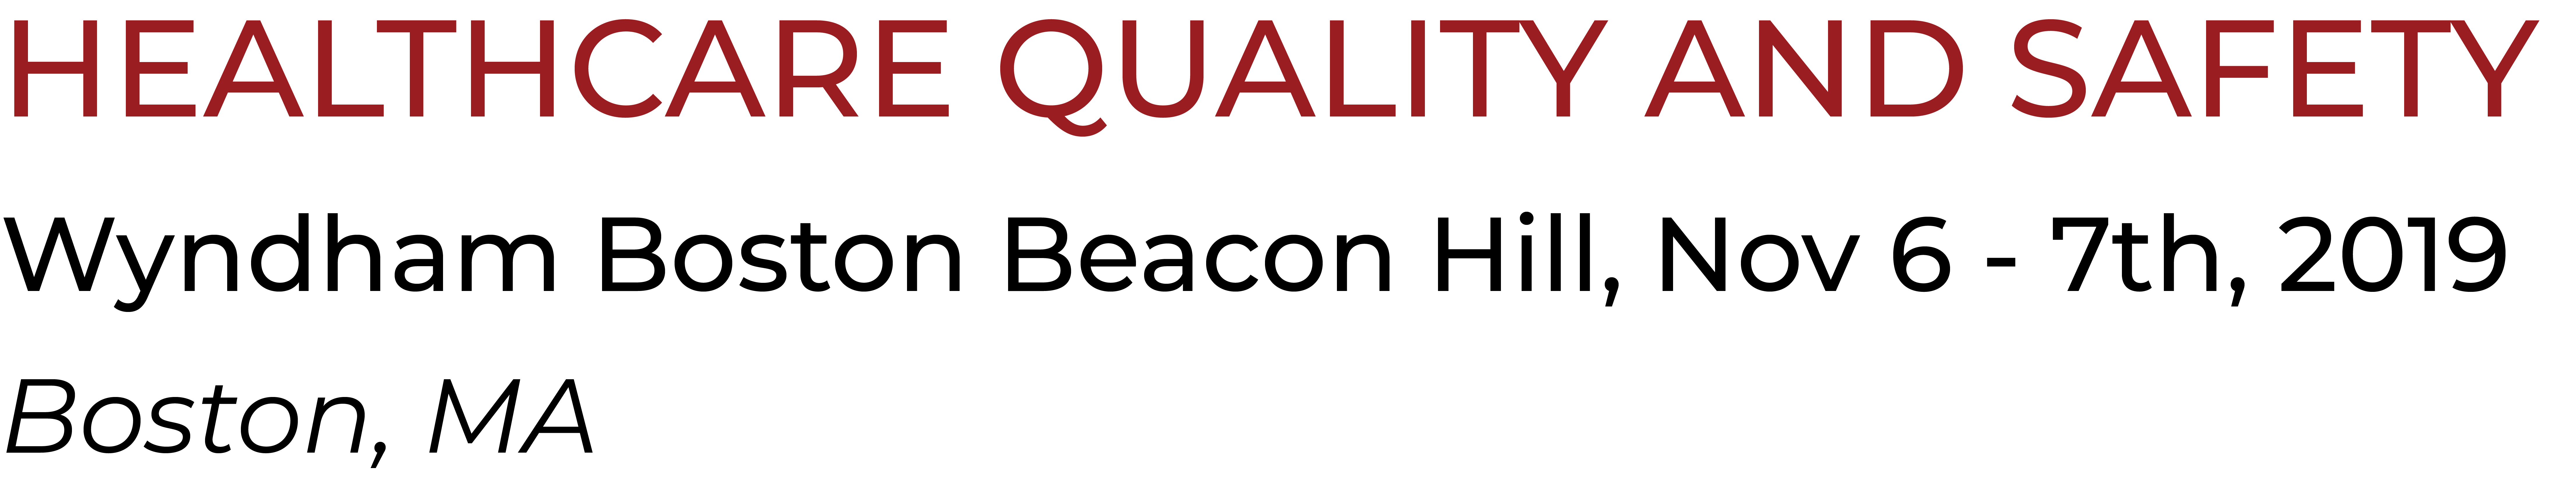 Healthcare Quality and Safety Conference